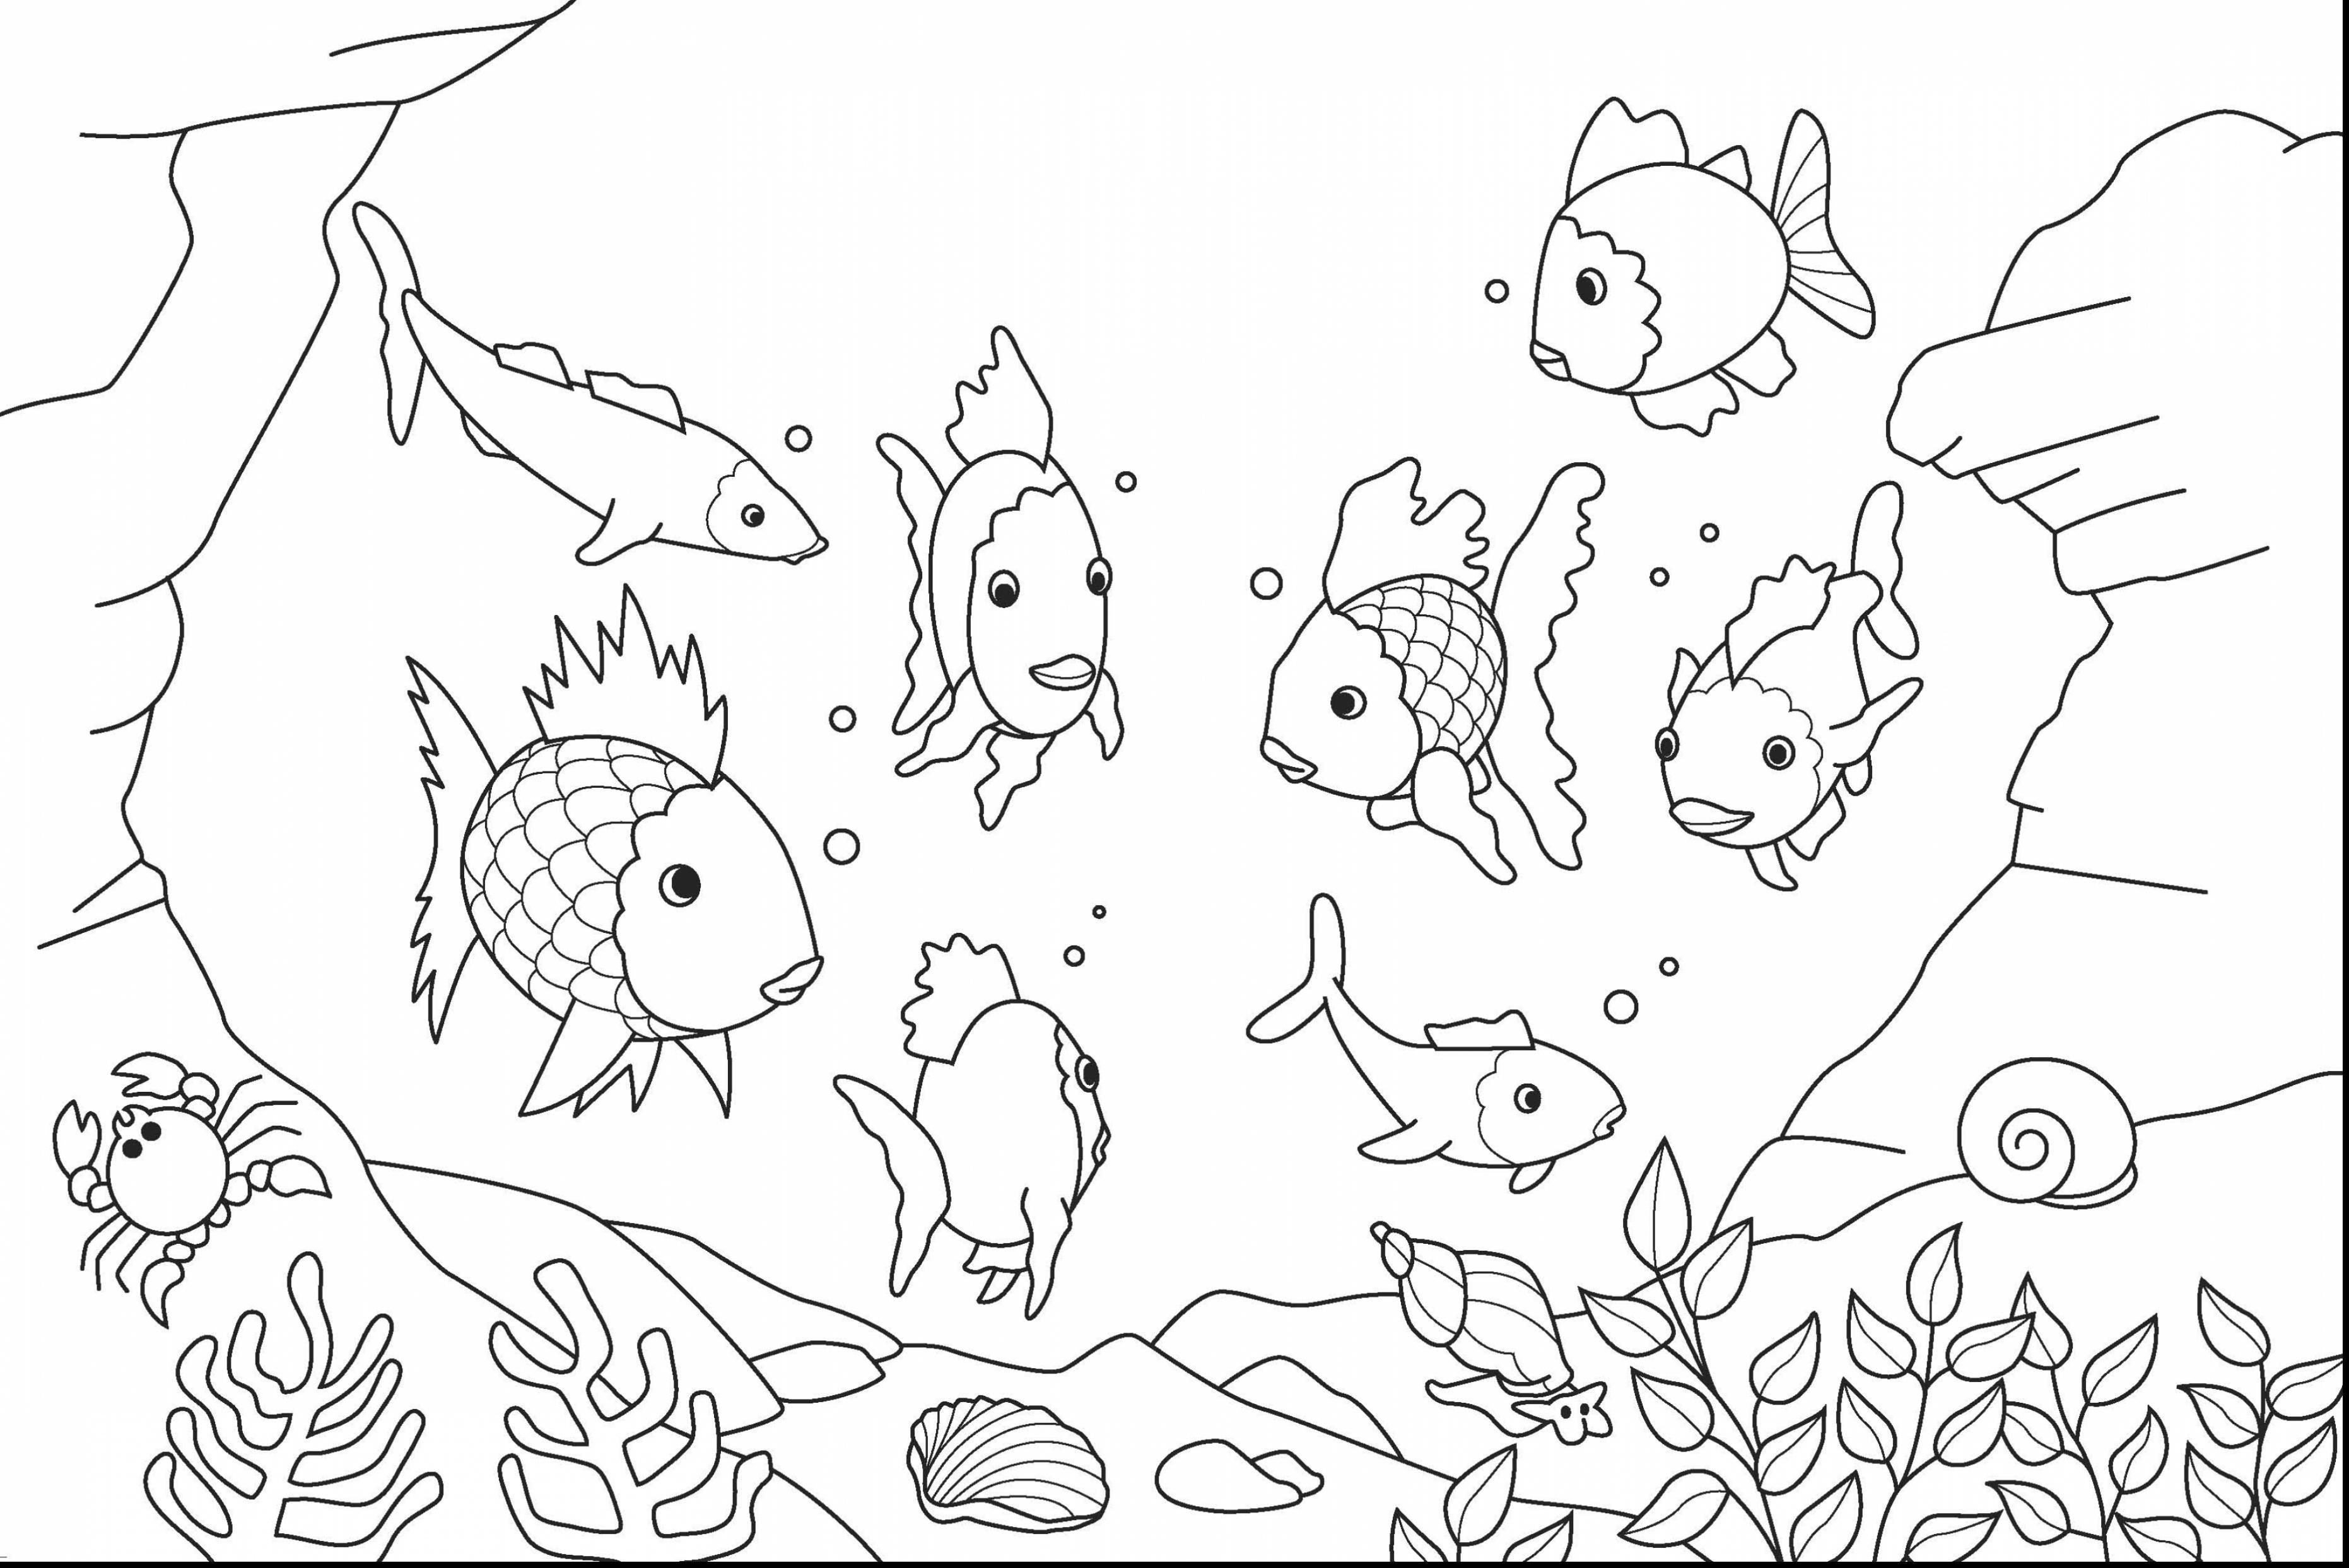 Ocean Fish Coloring Pages Animal Coloring Pages Fish Coloring Page